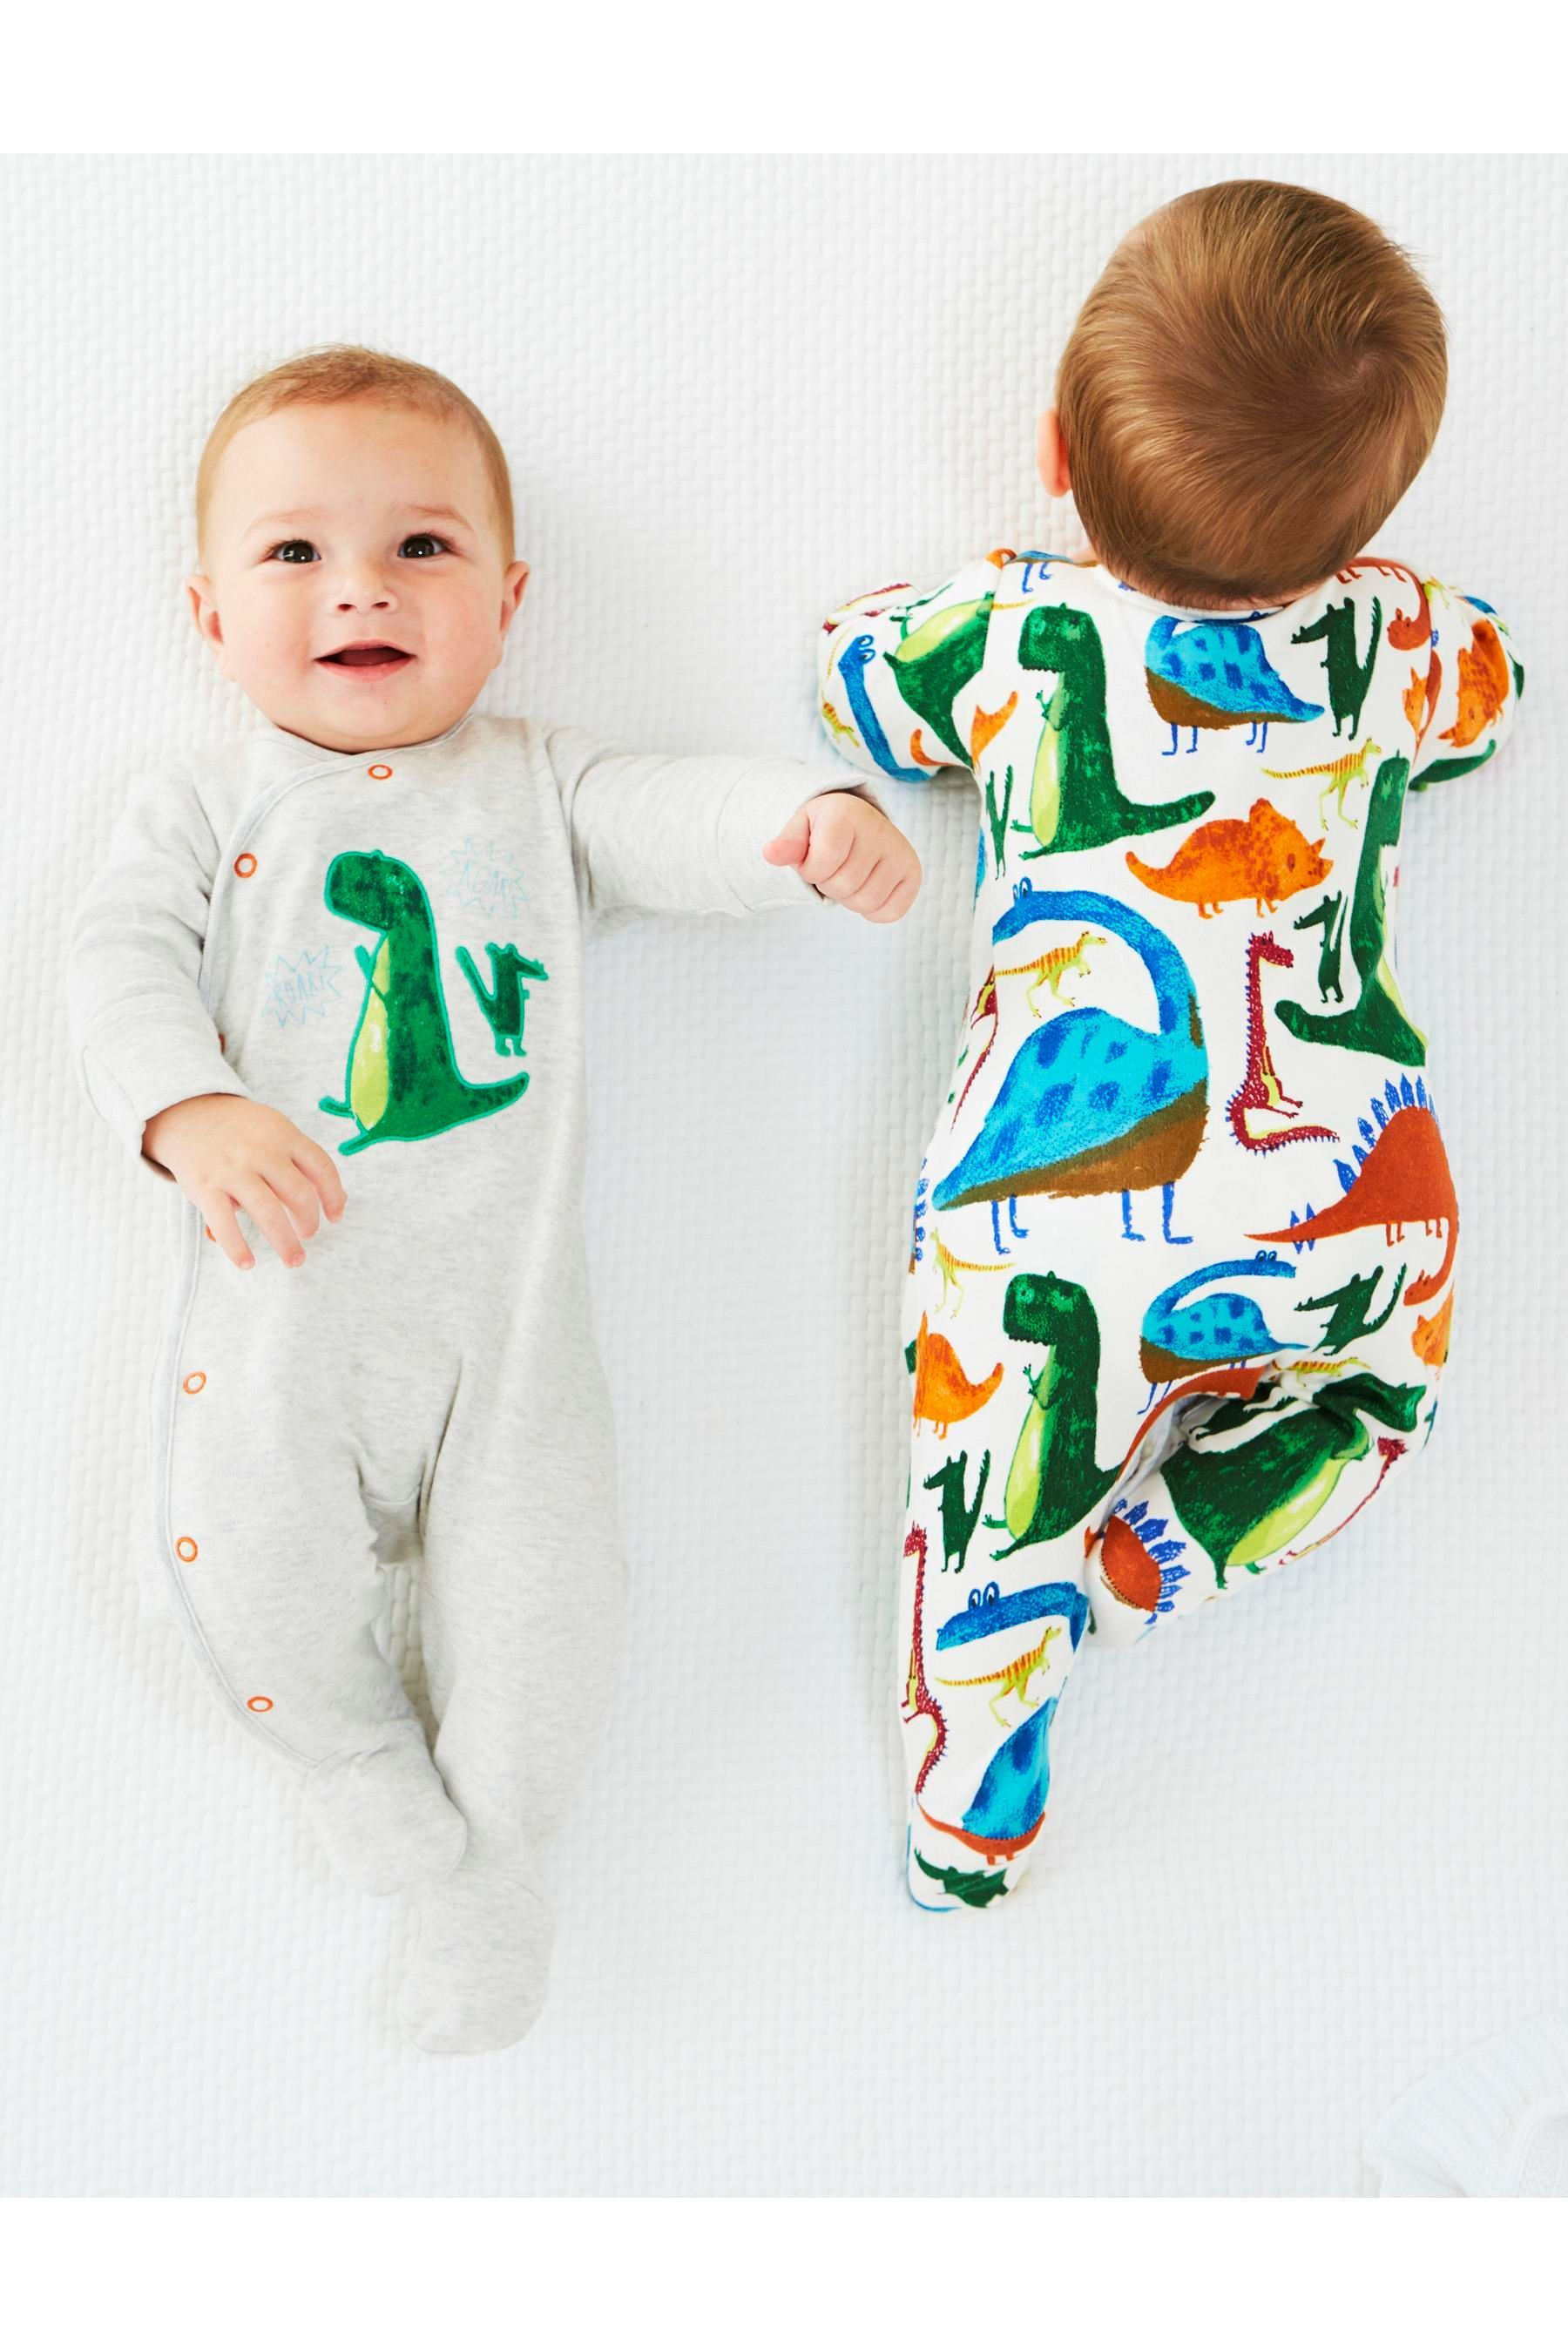 Baby & Toddler Clothing One-pieces Hard-Working Junior J Boys Sleepsuits Age 3-6 Months